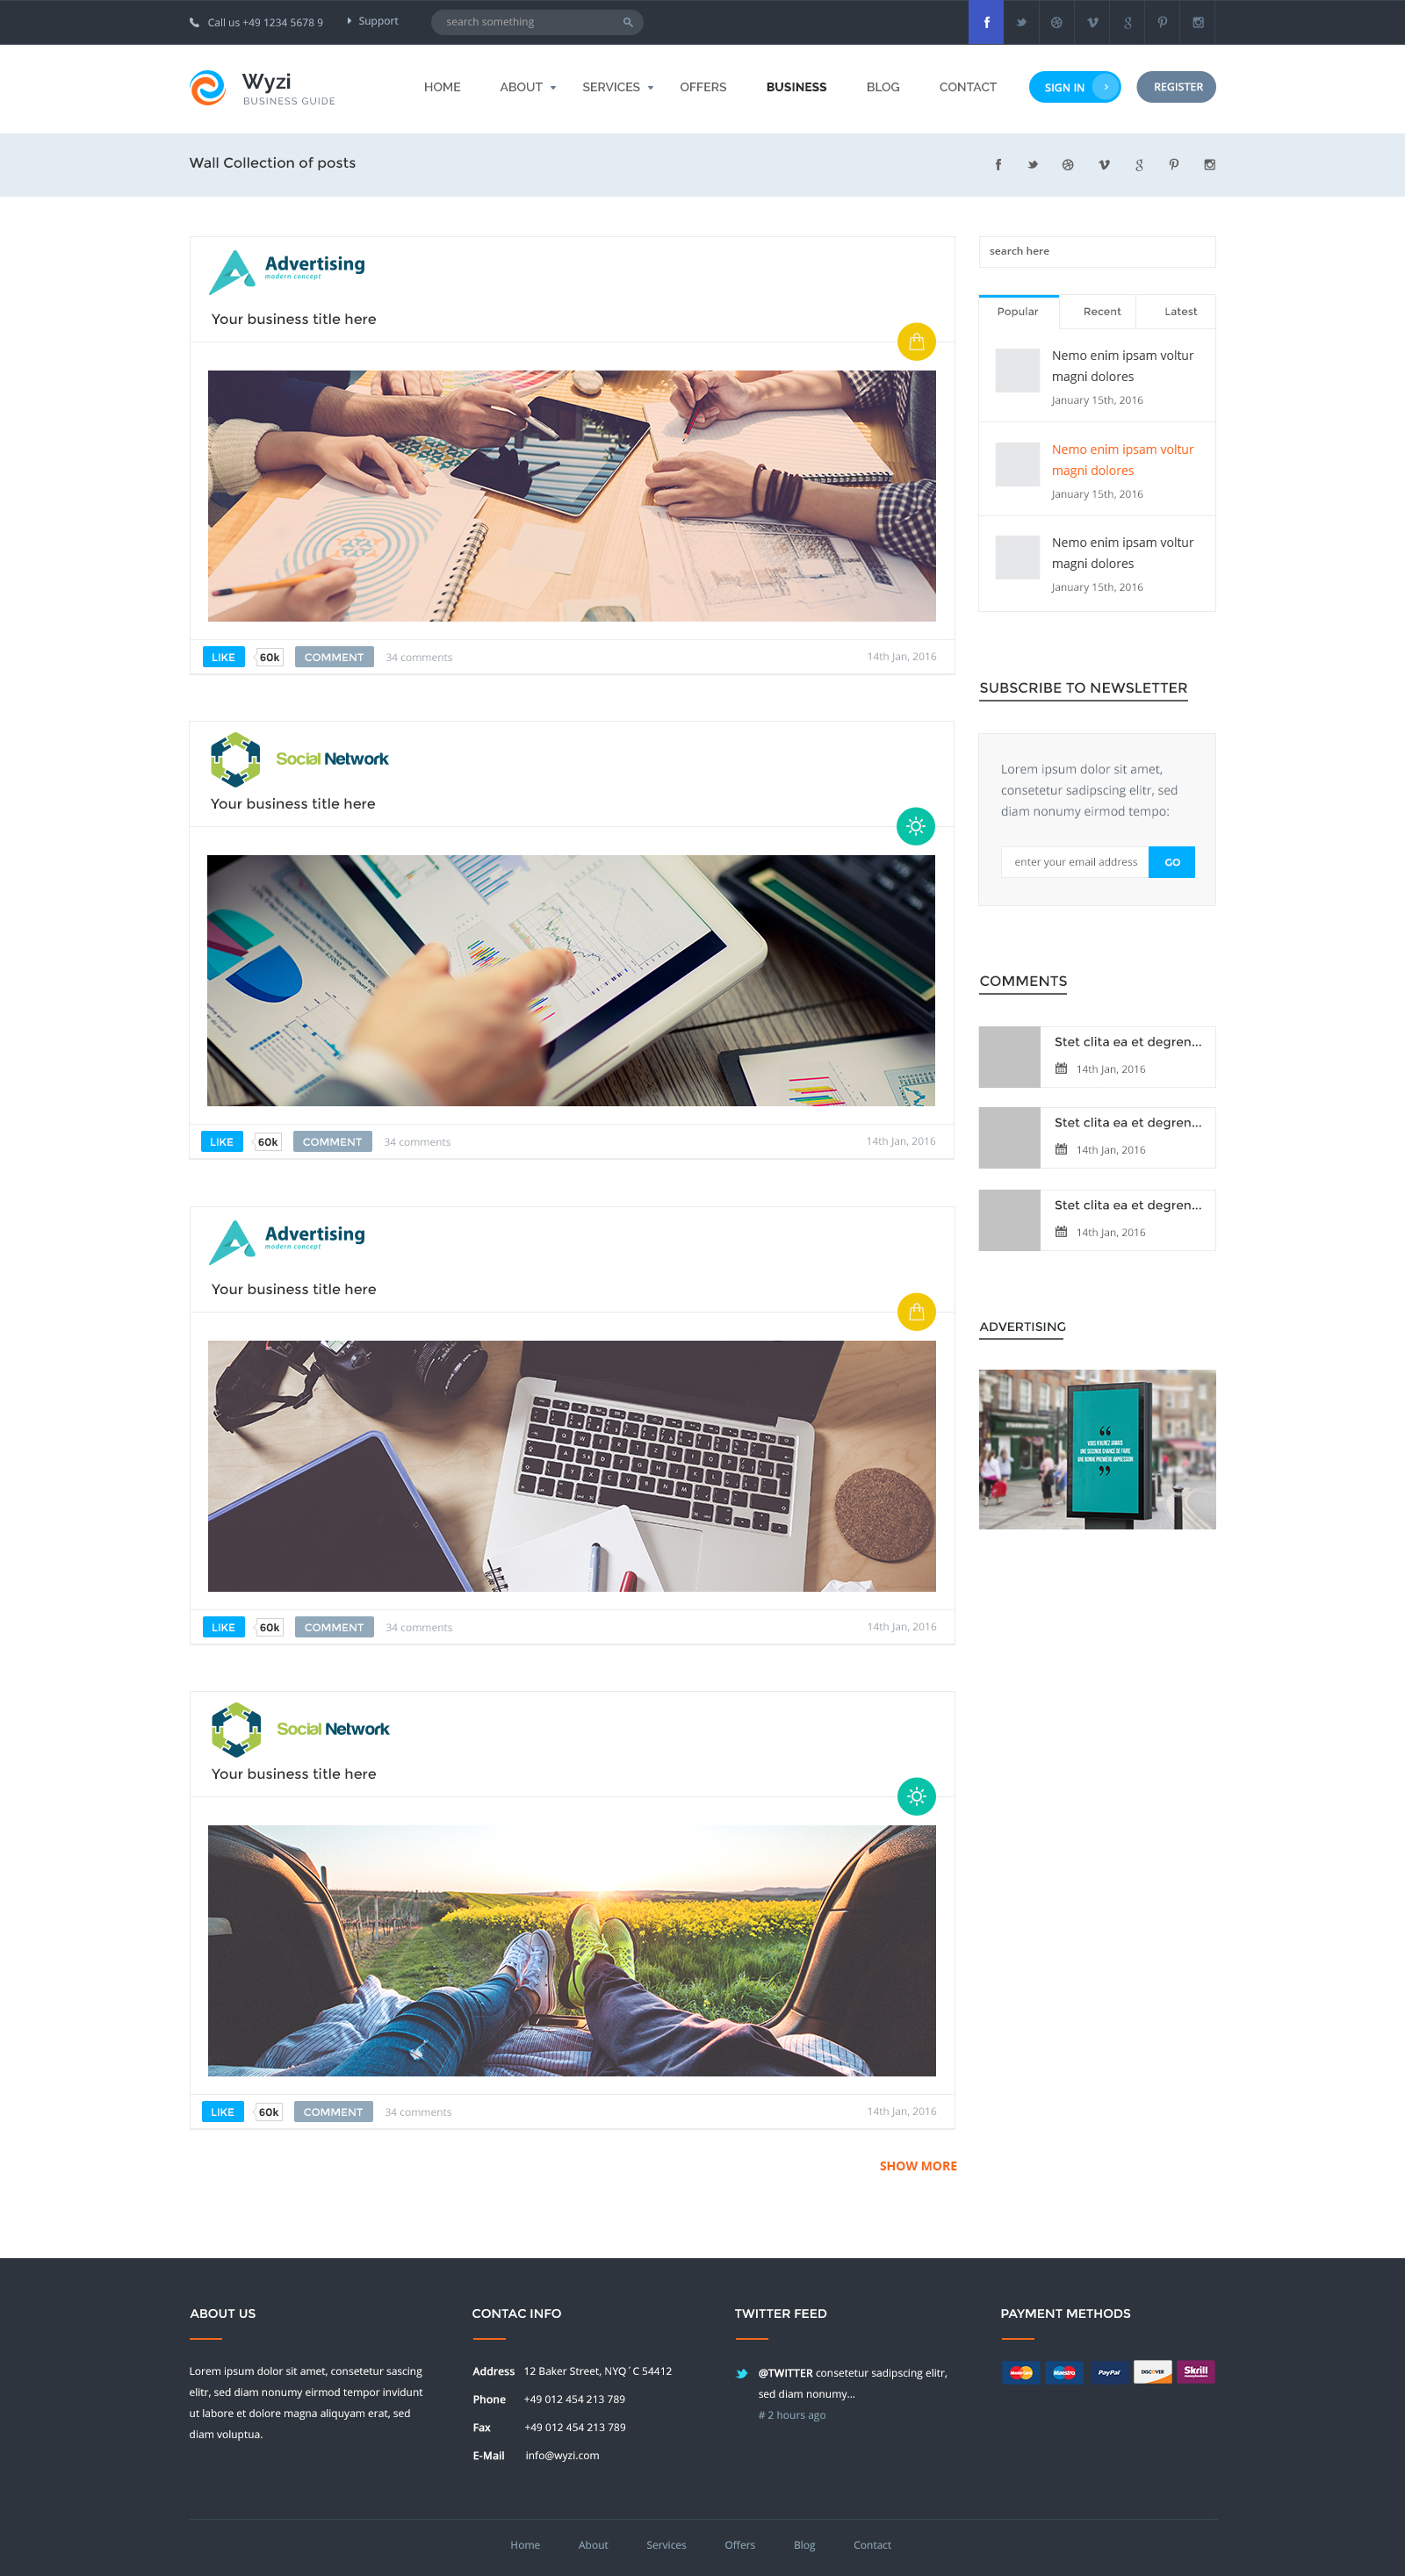 Wyzi business directory with social media look psd template by wyzi business directory with social media look psd template wajeb Image collections